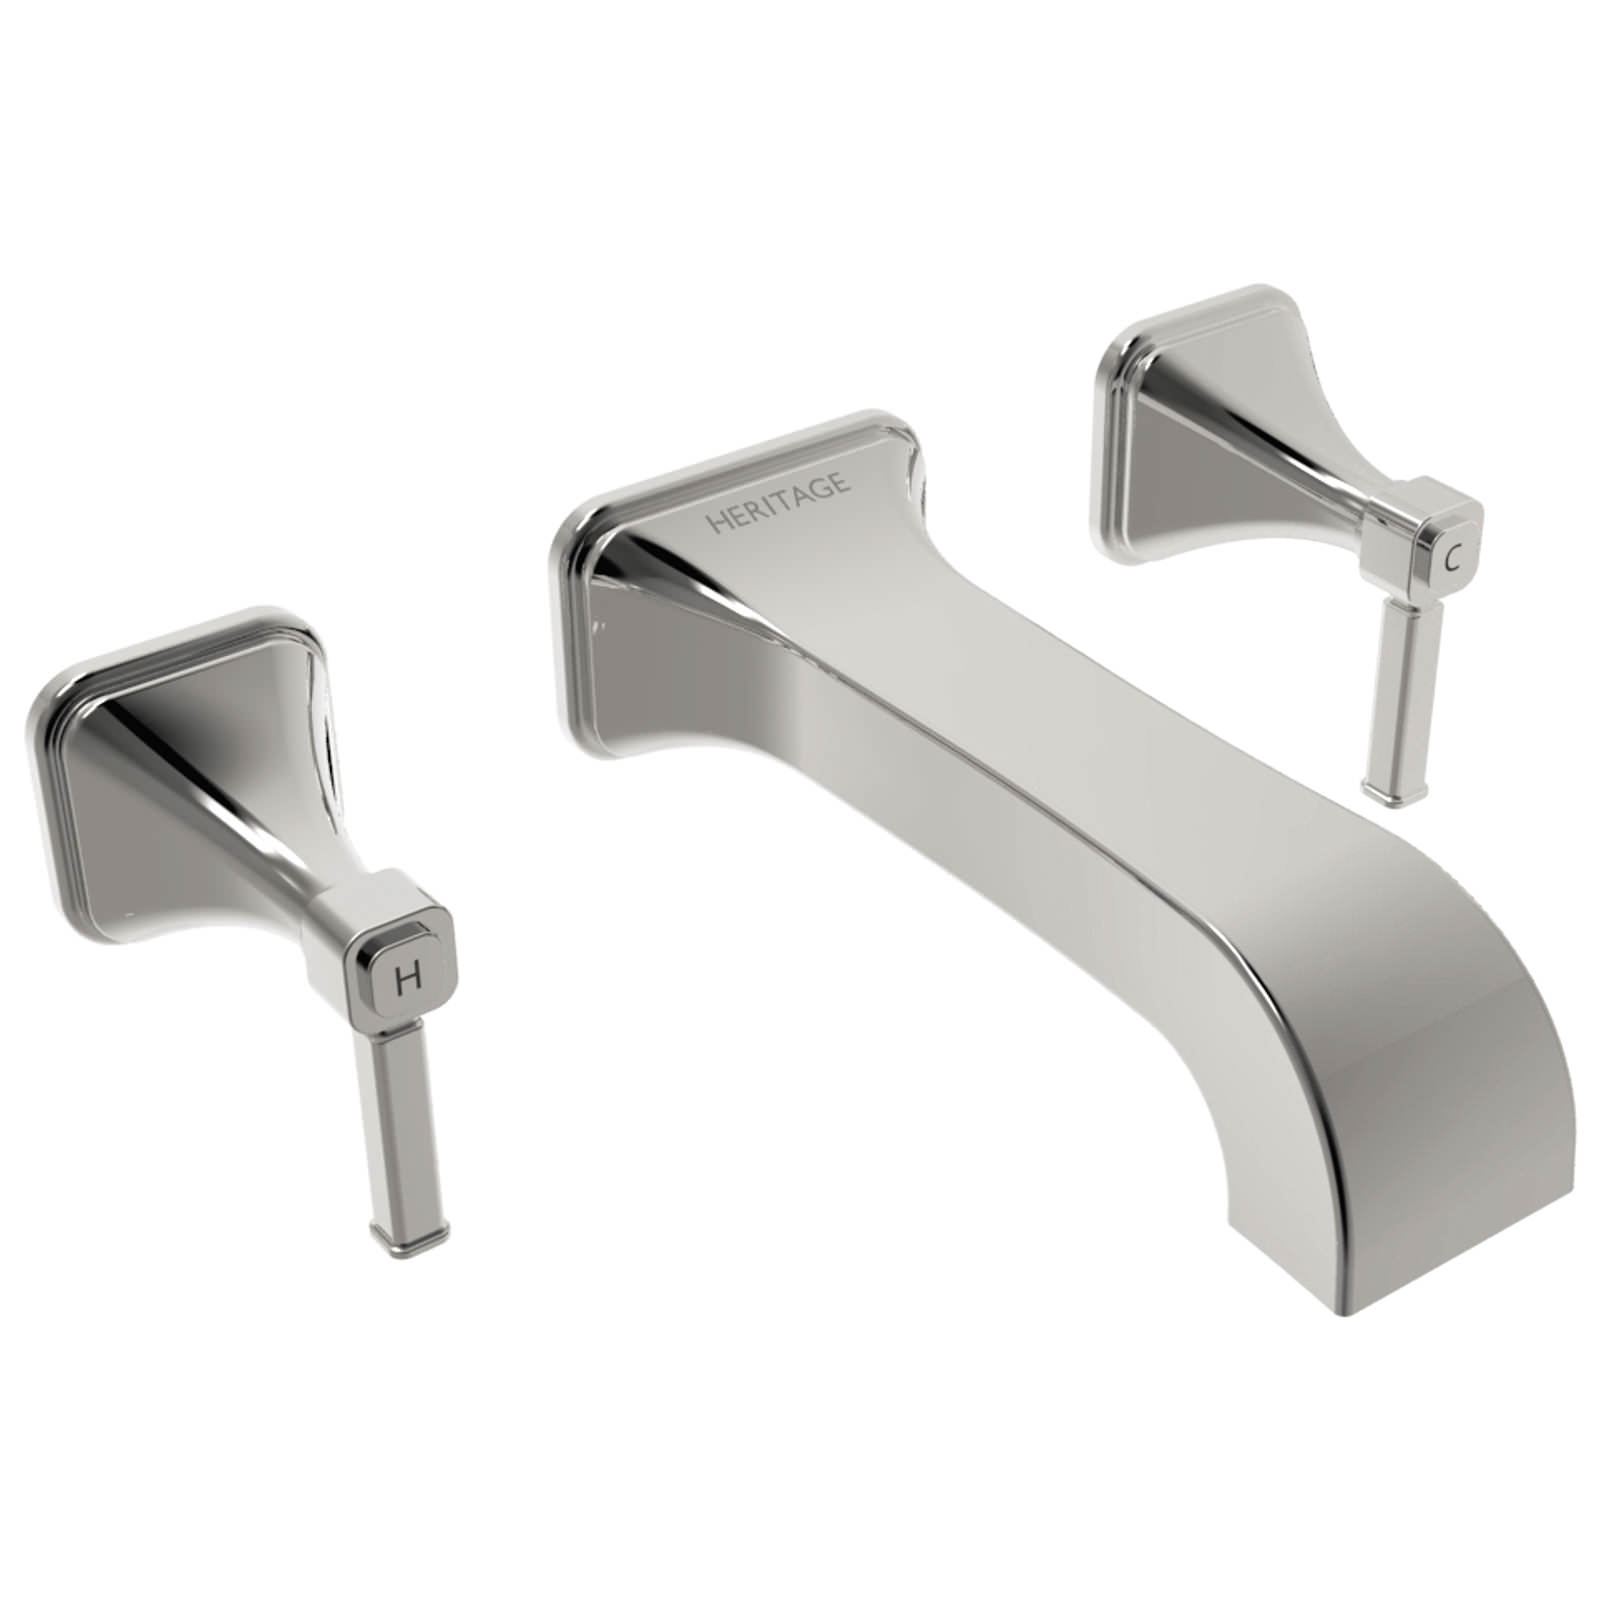 Heritage Somersby 3 Taphole Wall Mounted Bath Filler Tap